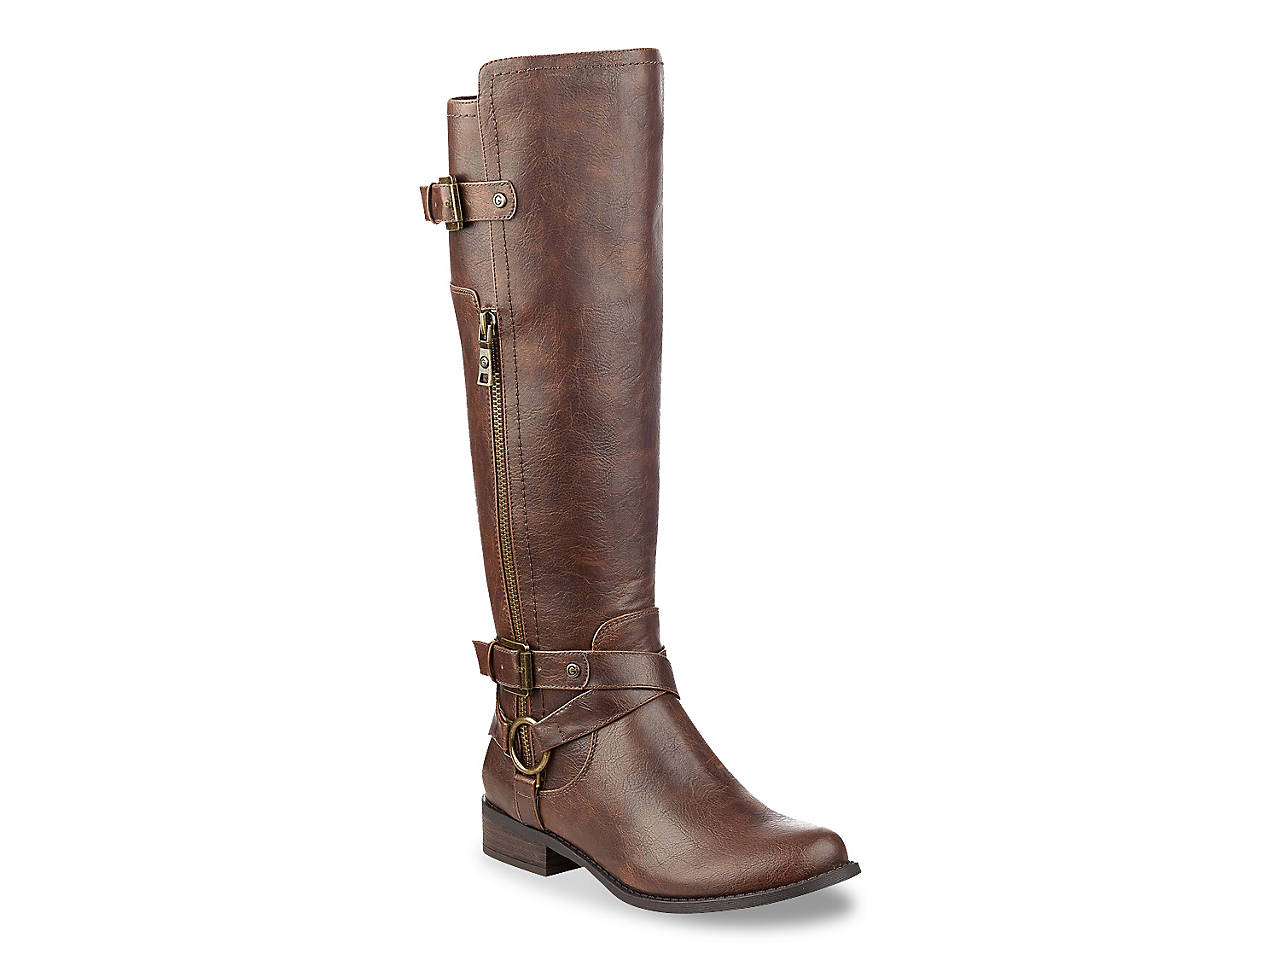 G by GUESS Herly Wide Calf Riding Boot Women s Shoes  a14164f1be